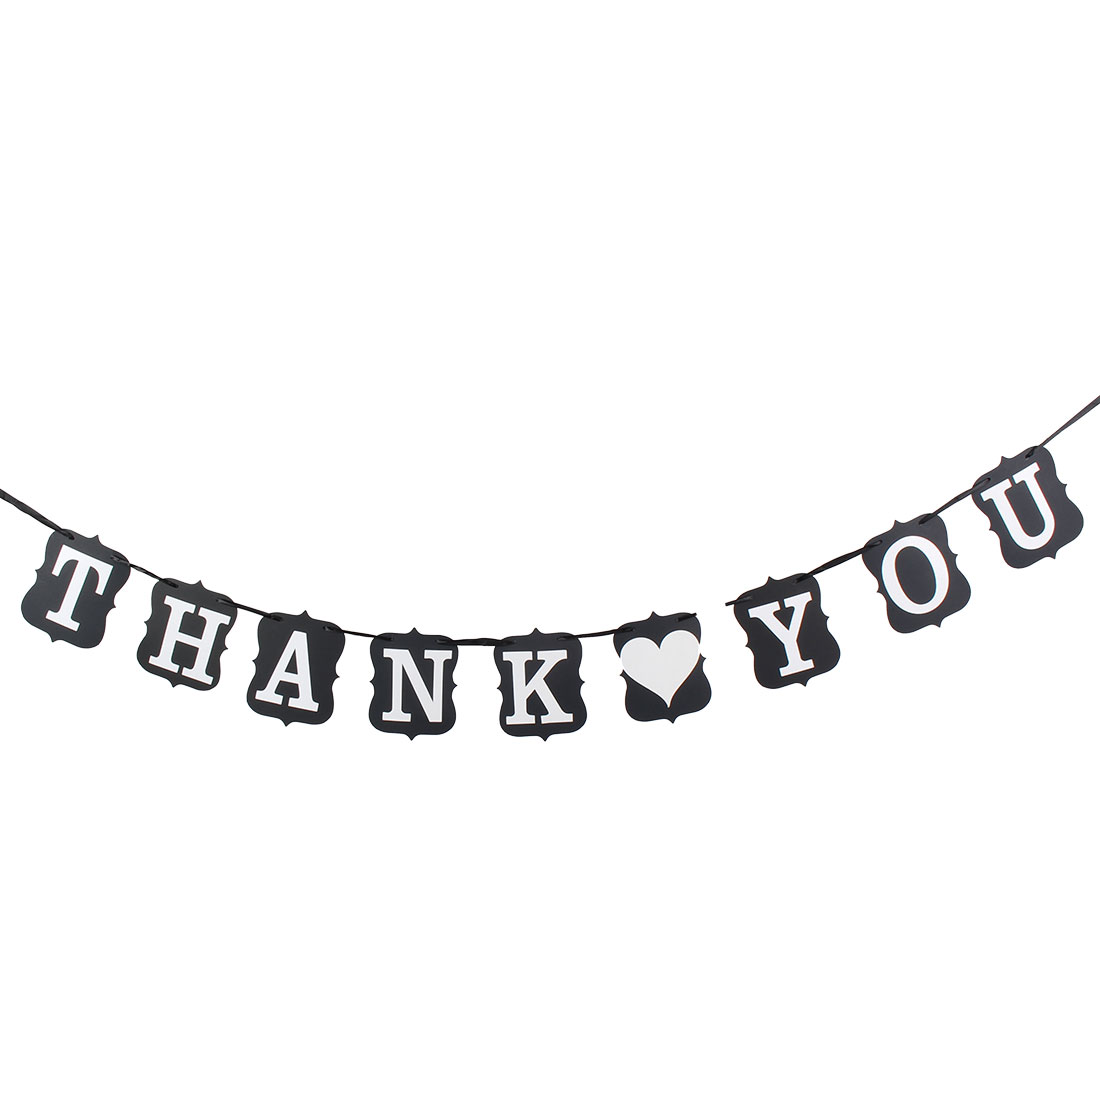 Wedding Card Bunting Banner THANK YOU Letter Vintage Style Venue Decoration Photo Prop Black